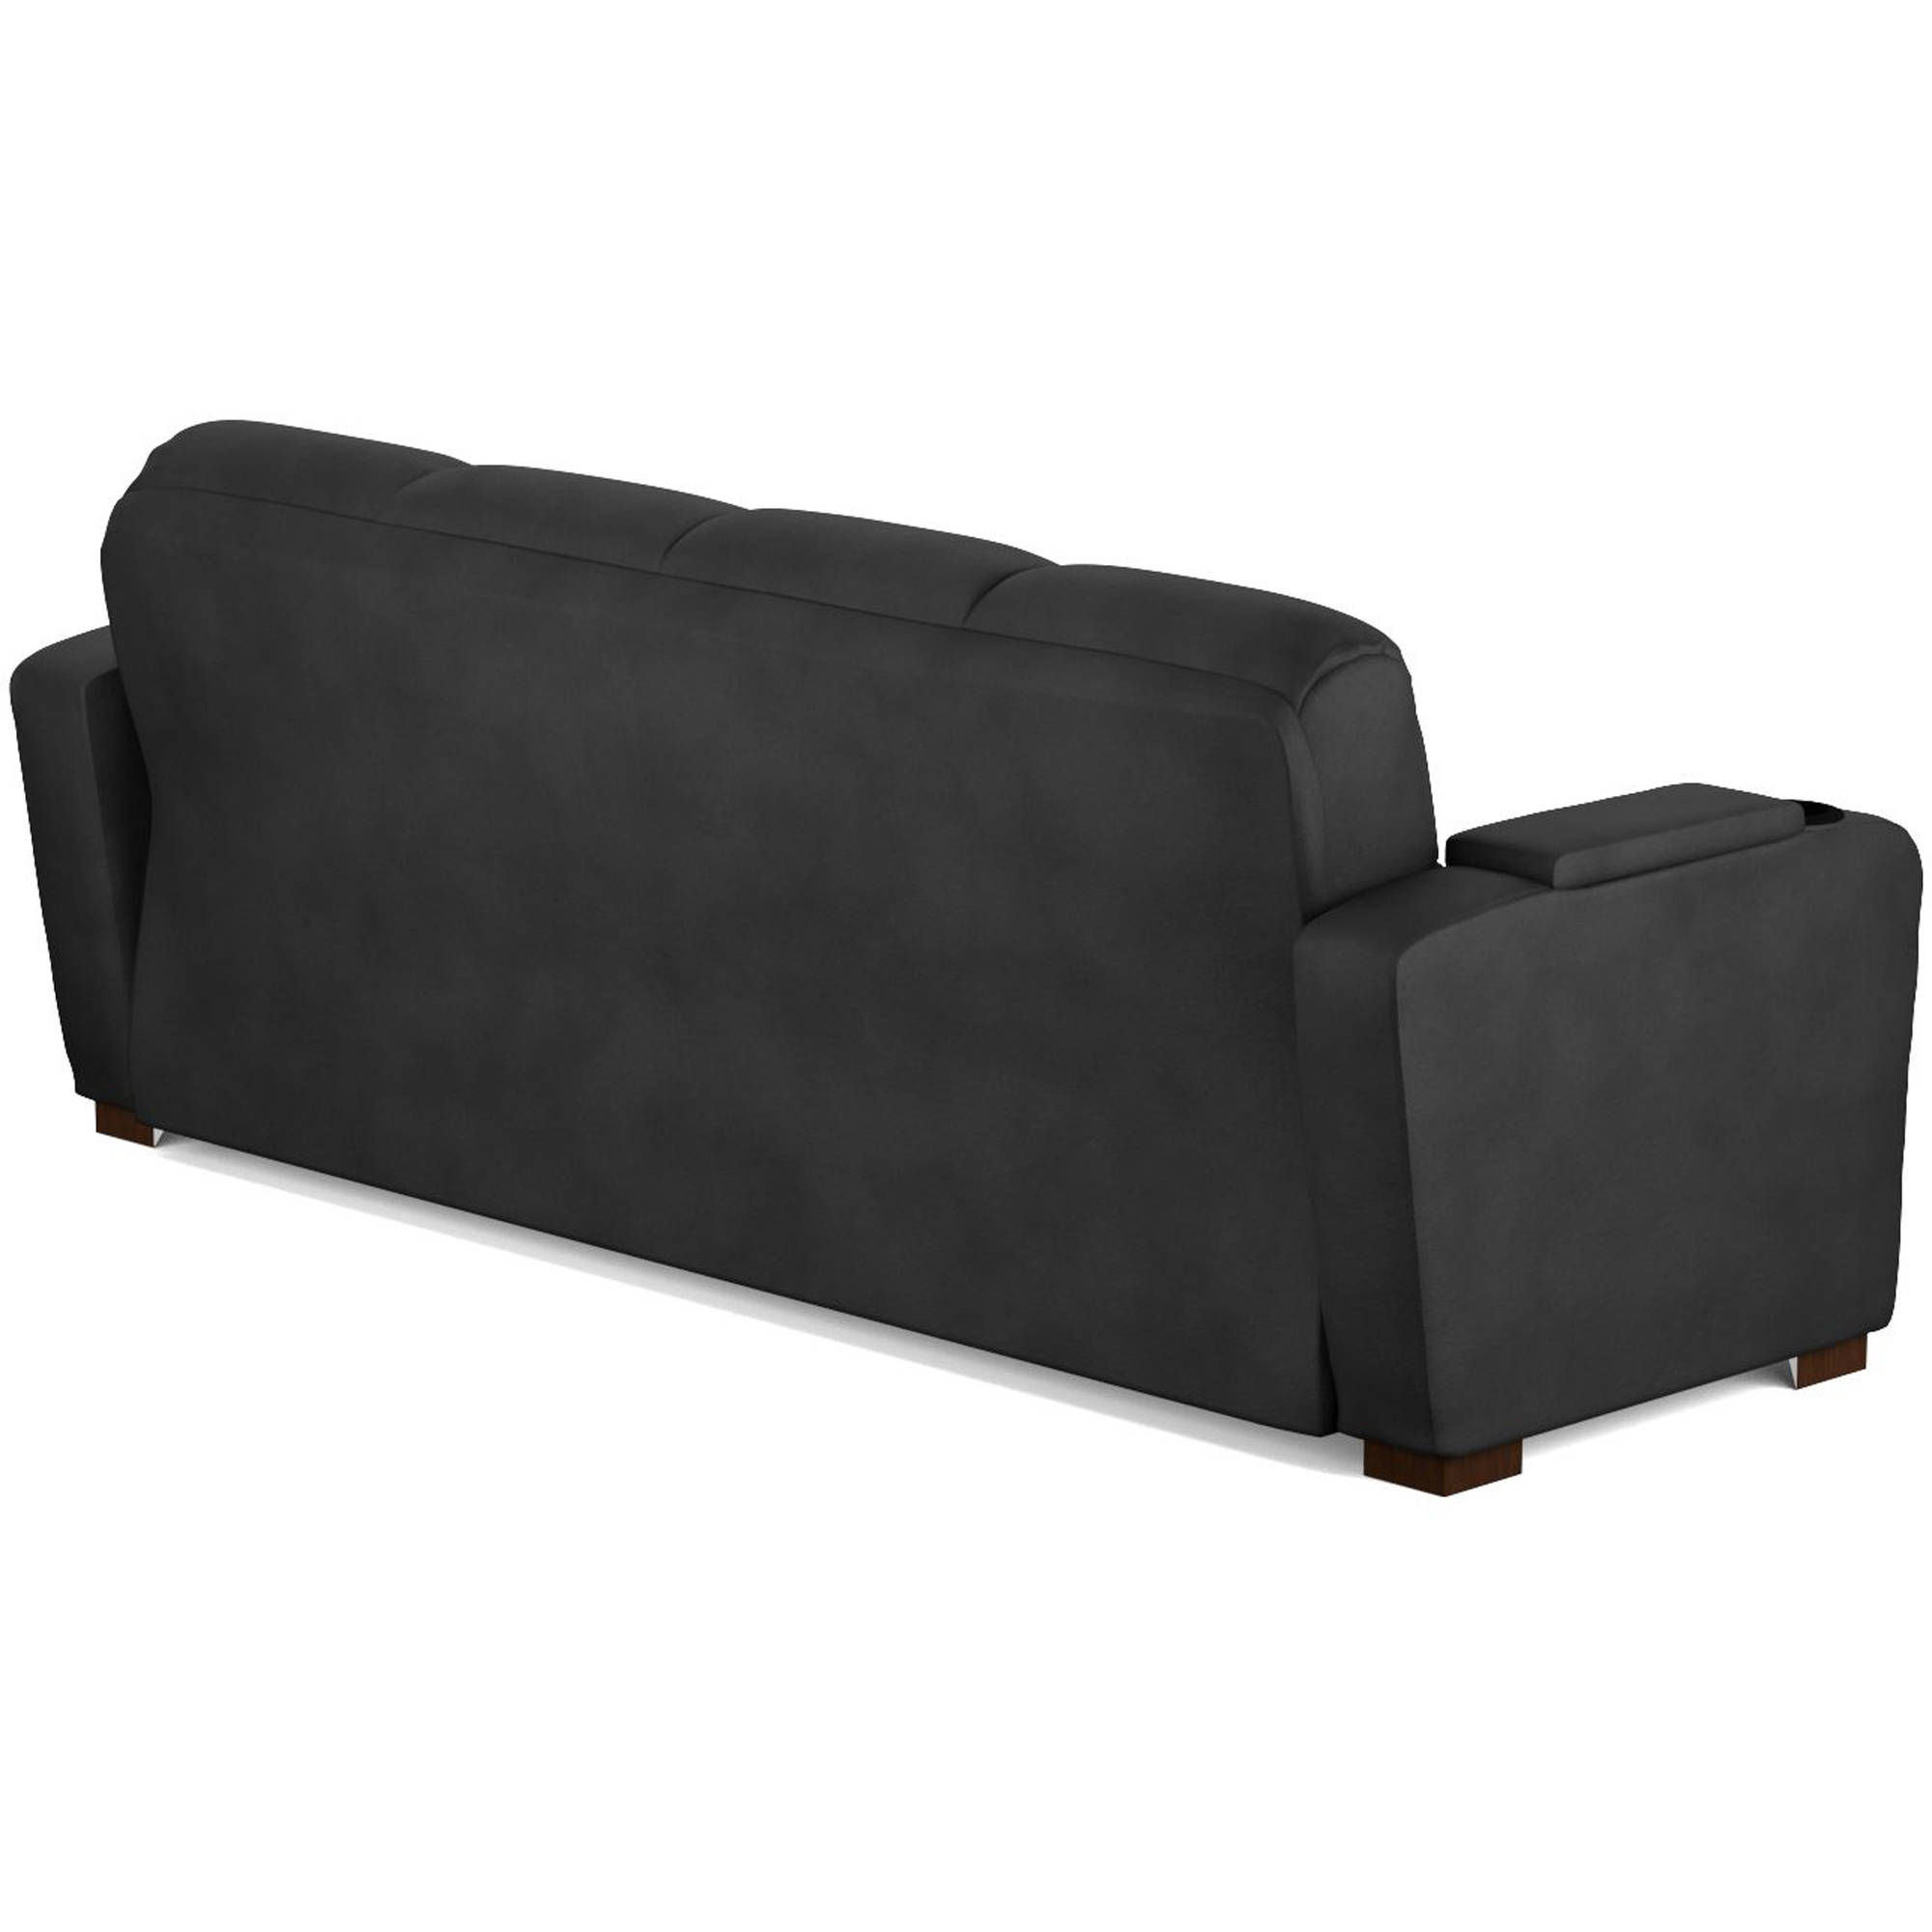 Brilliant Mainstays Tyler Sofa Bed Multiple Colors Walmart Com Dailytribune Chair Design For Home Dailytribuneorg